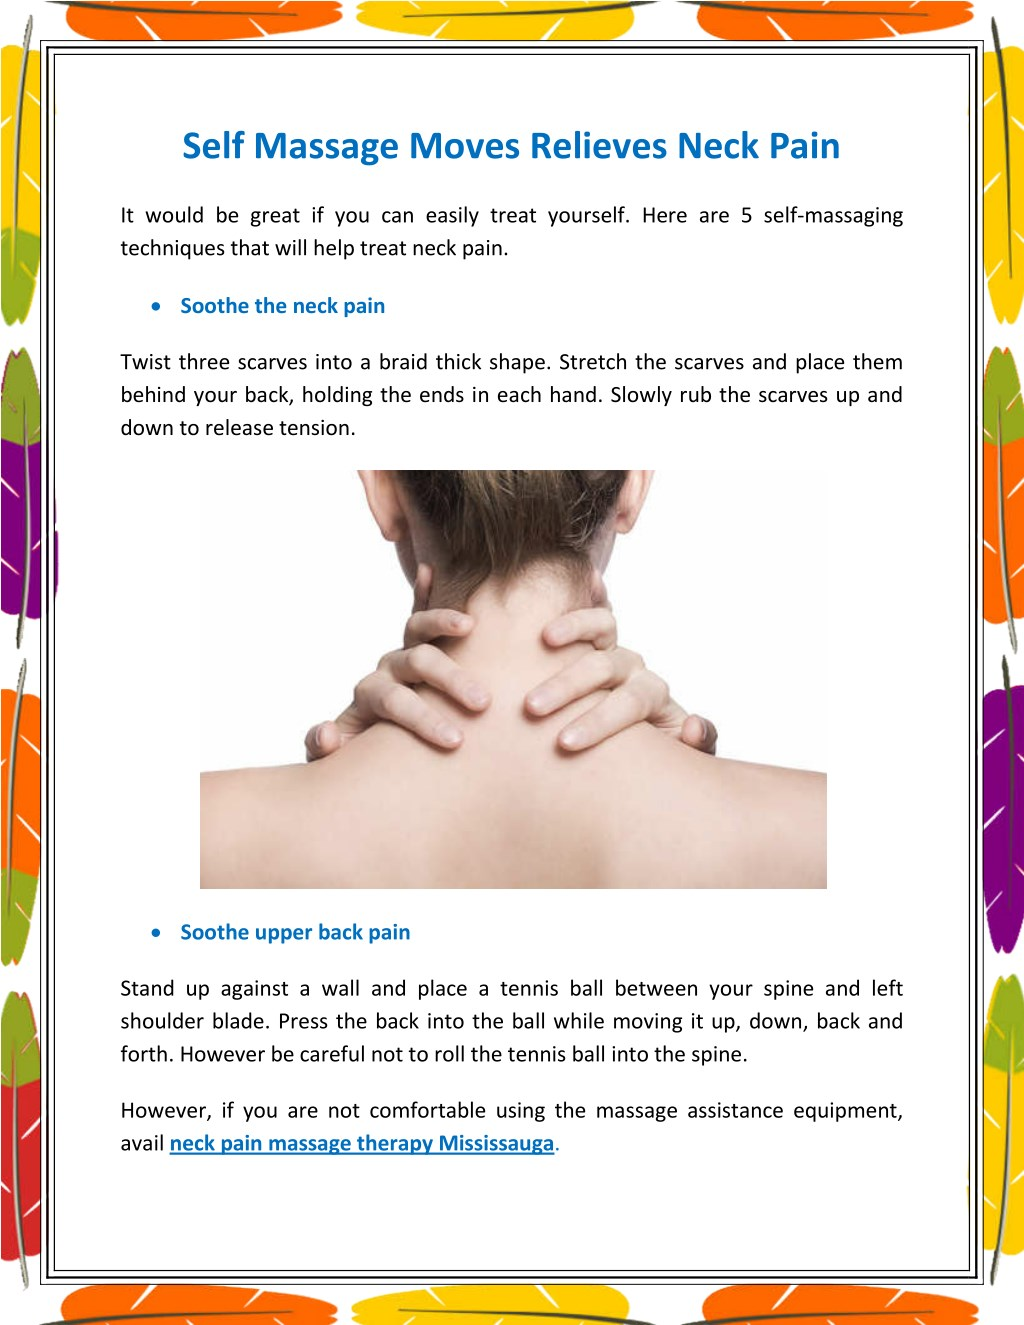 ppt - self massage moves relieves neck pain powerpoint presentation